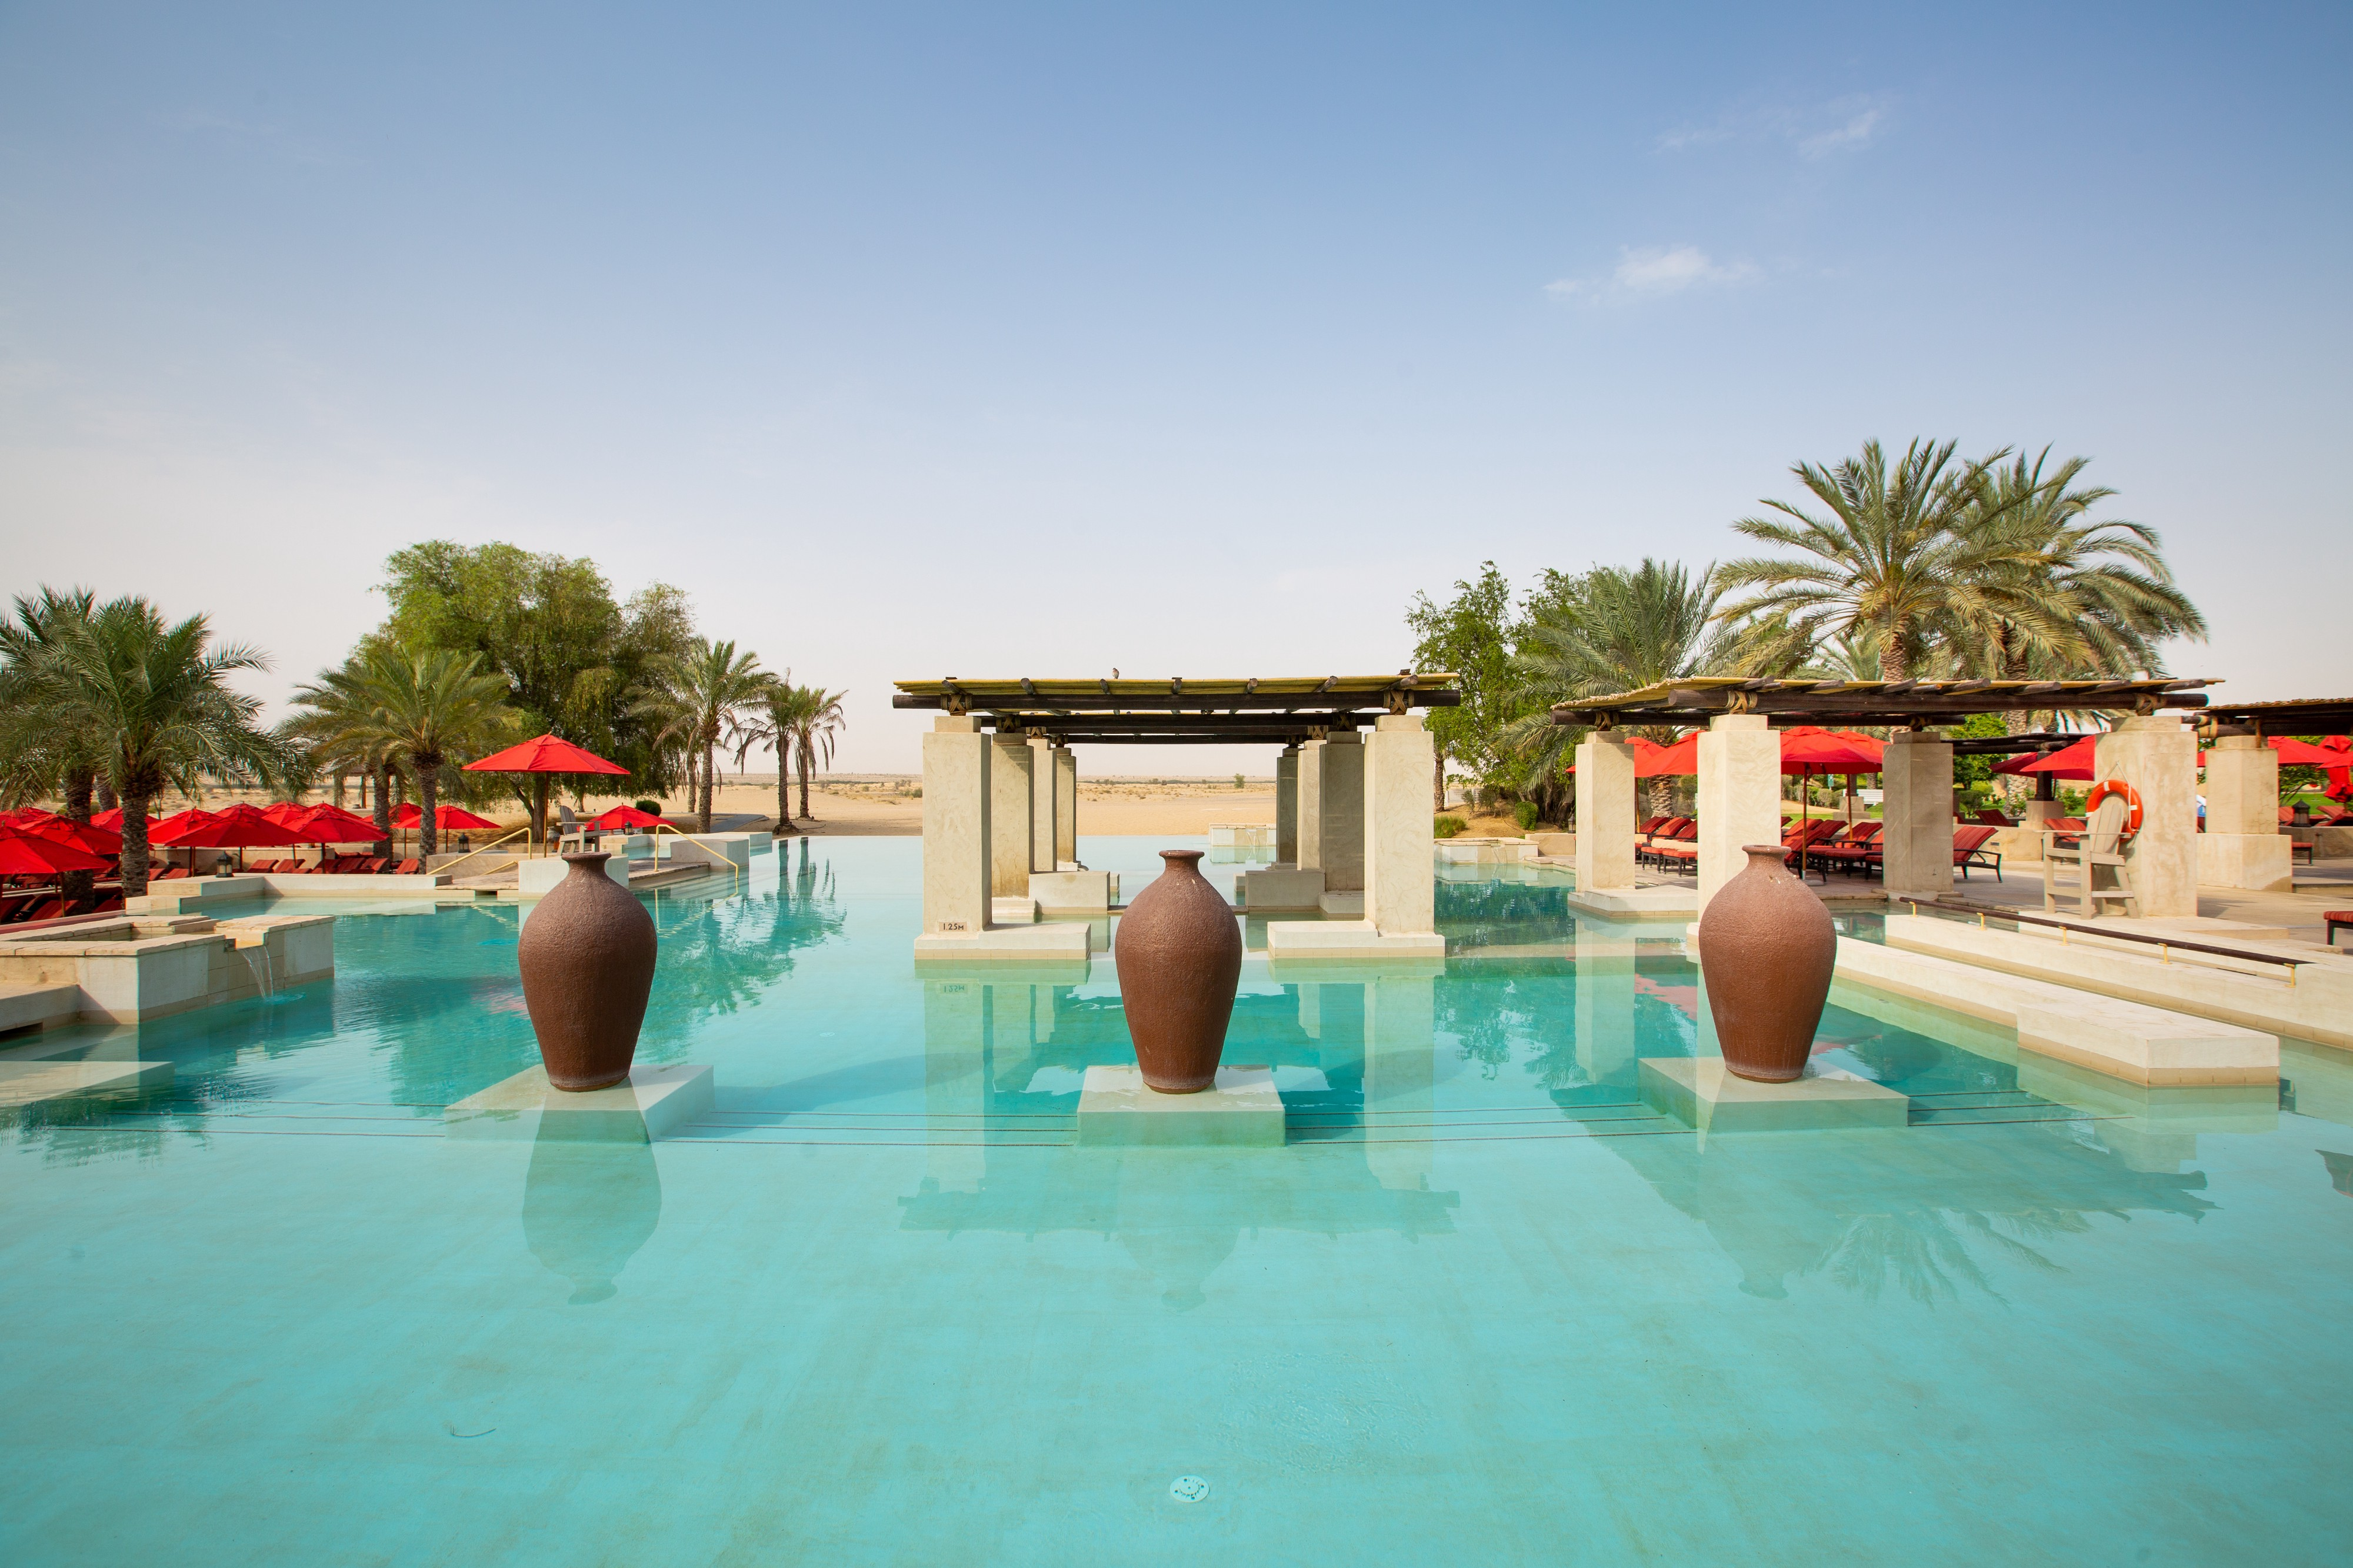 10 Things You Ll Love About Bab Al Shams Desert Resort And Spa By The Privilee Team Privilee Insider Medium